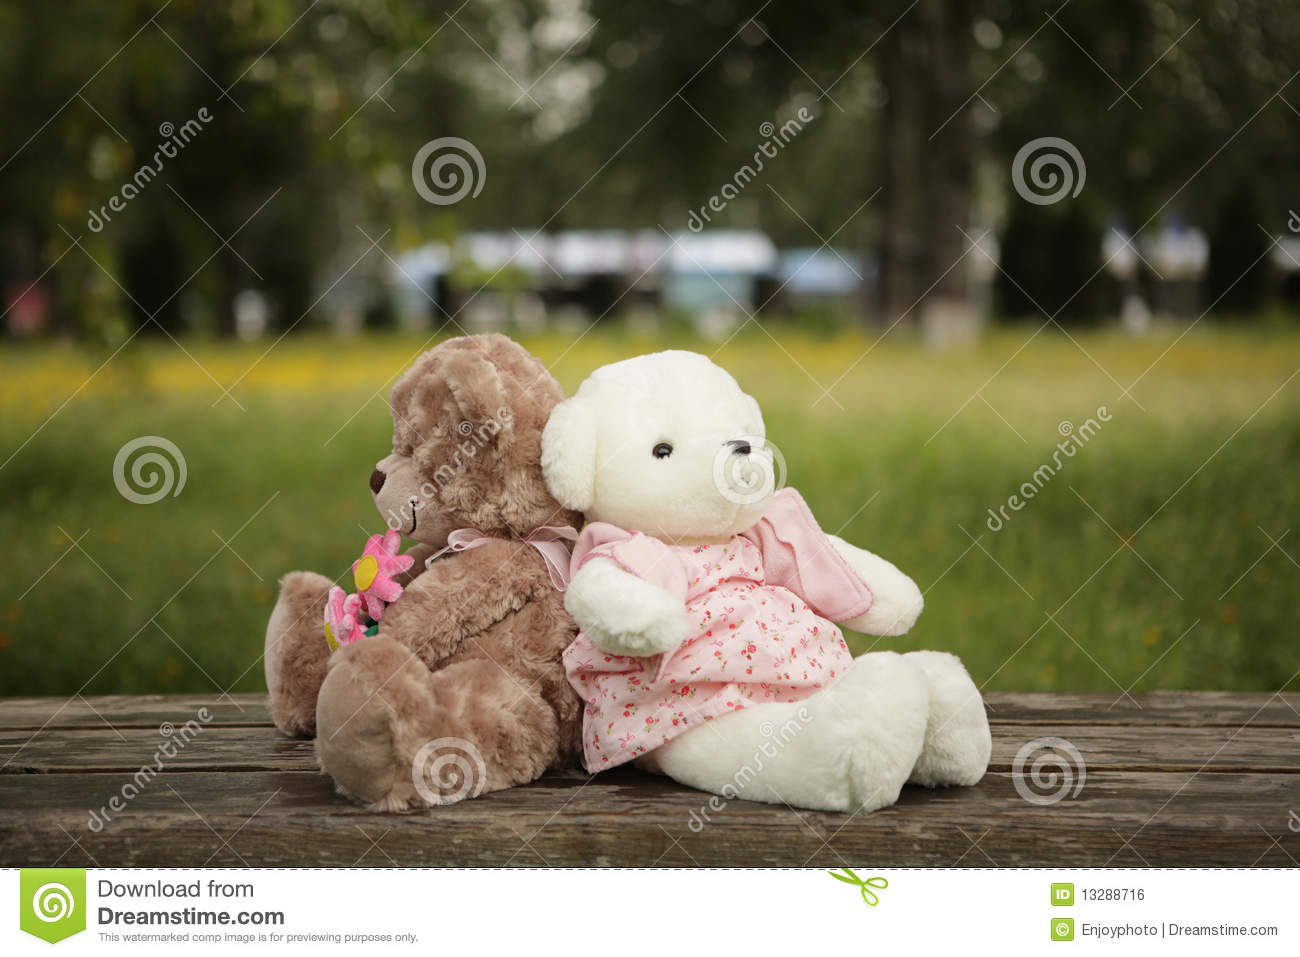 Sweet And Cute Couple Wallpaper Romantic Teddy Bears Royalty Free Stock Image Image